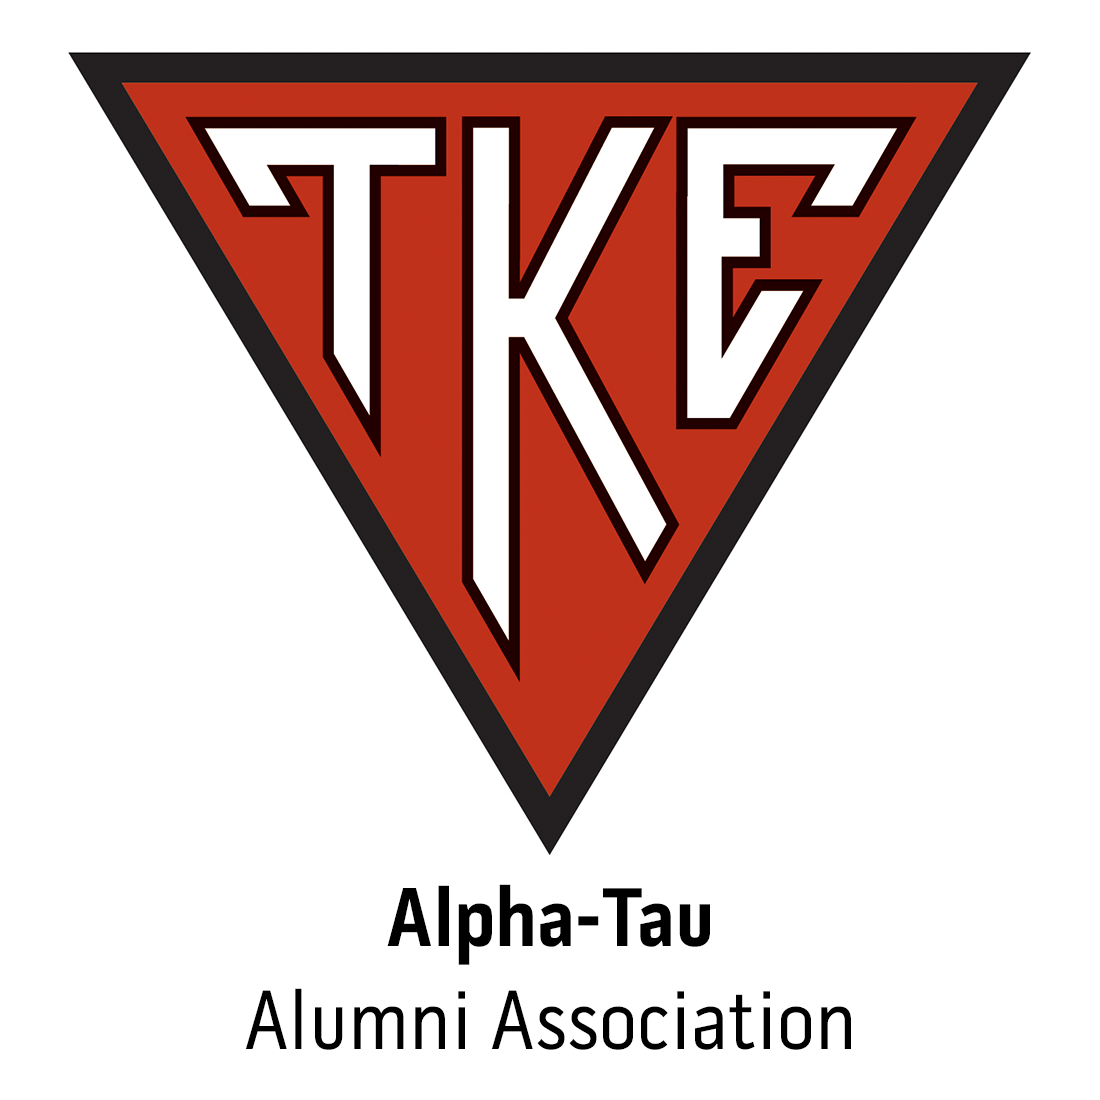 Alpha-Tau Alumni Association at Drexel University